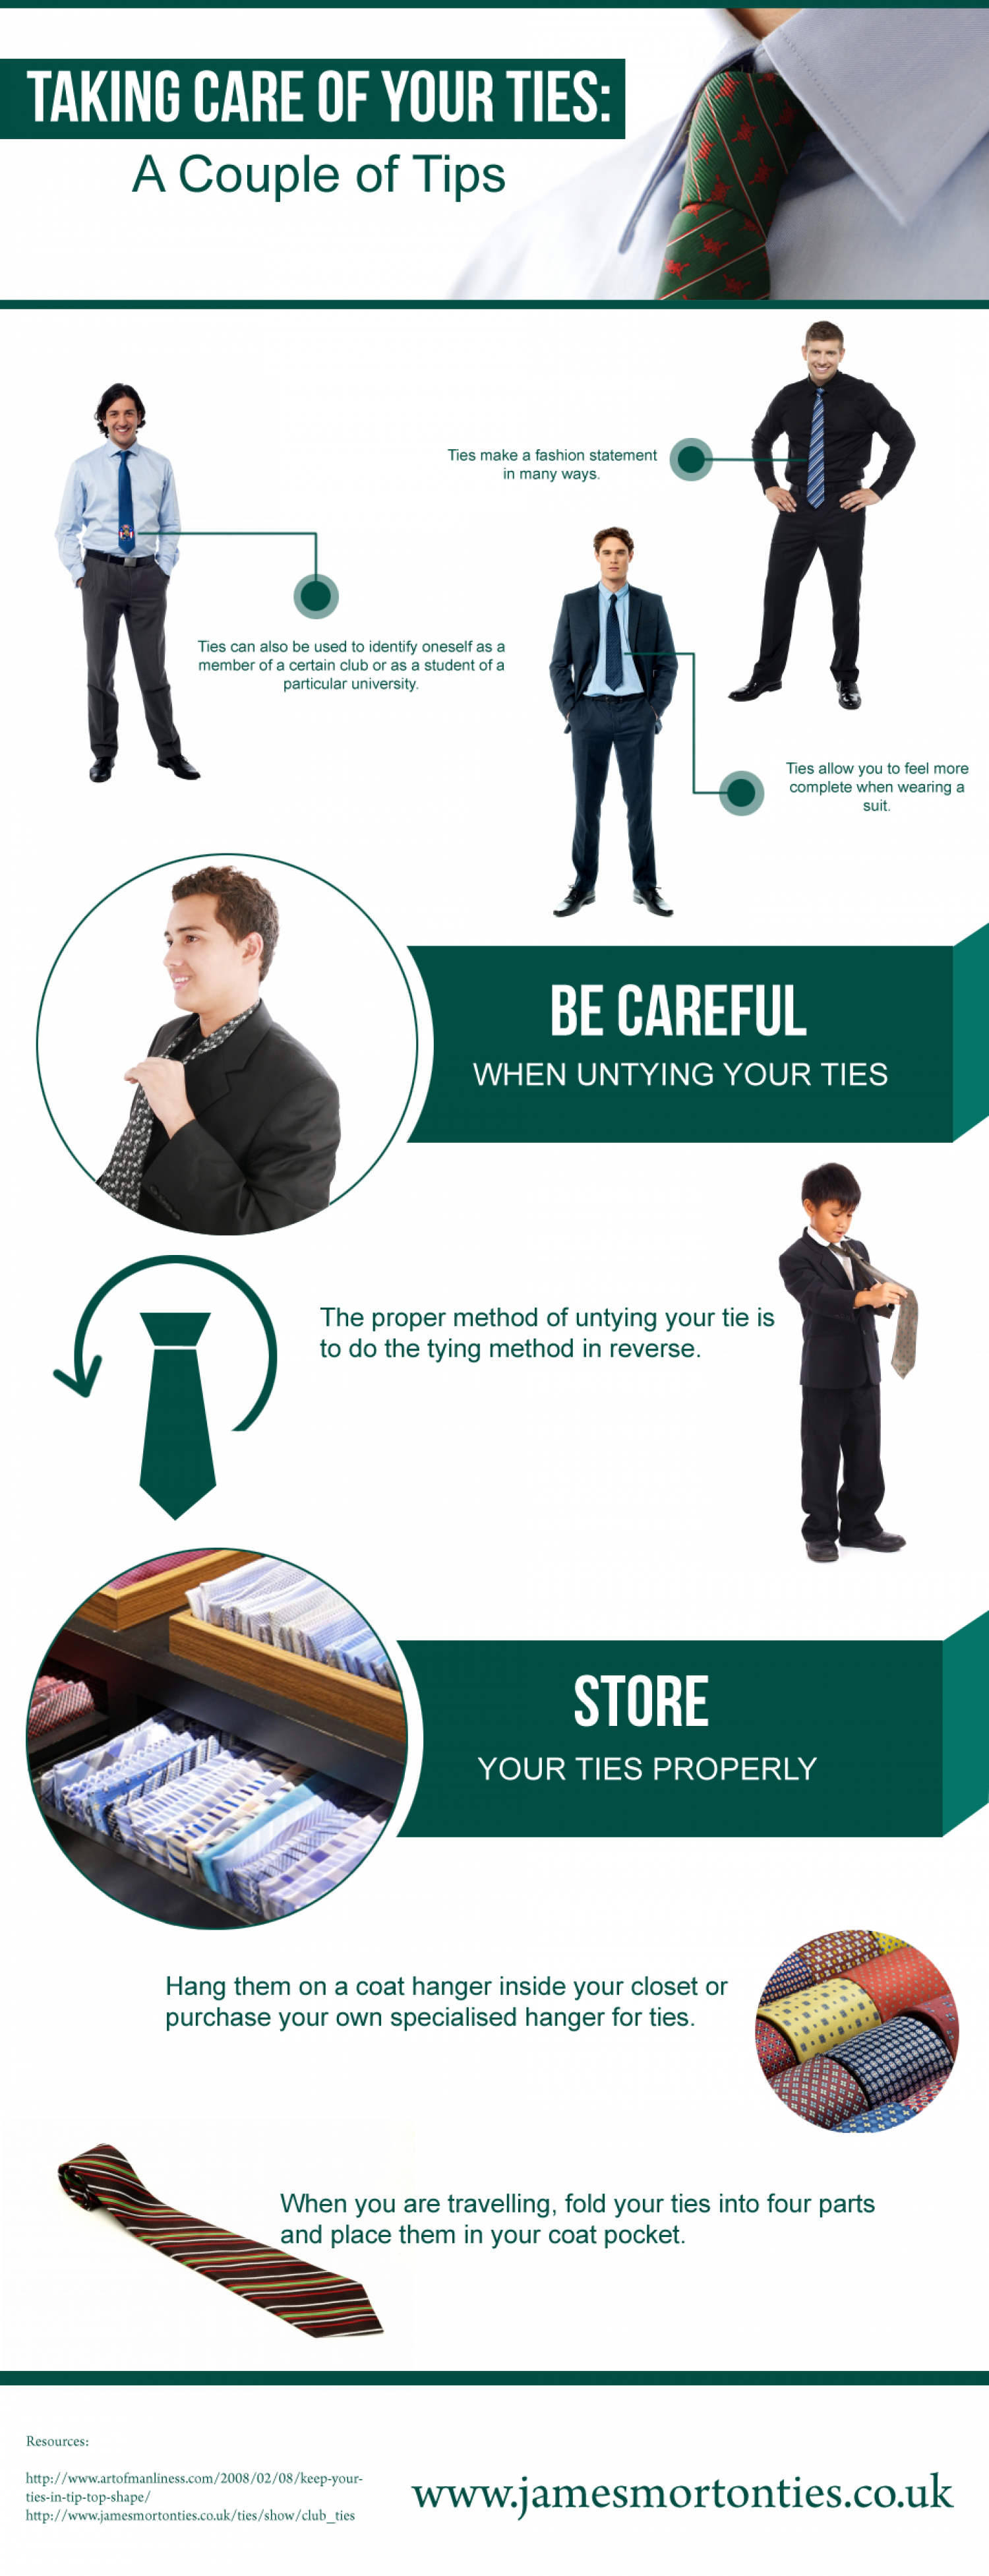 Taking Care of Your Ties: A Couple of Tips Infographic